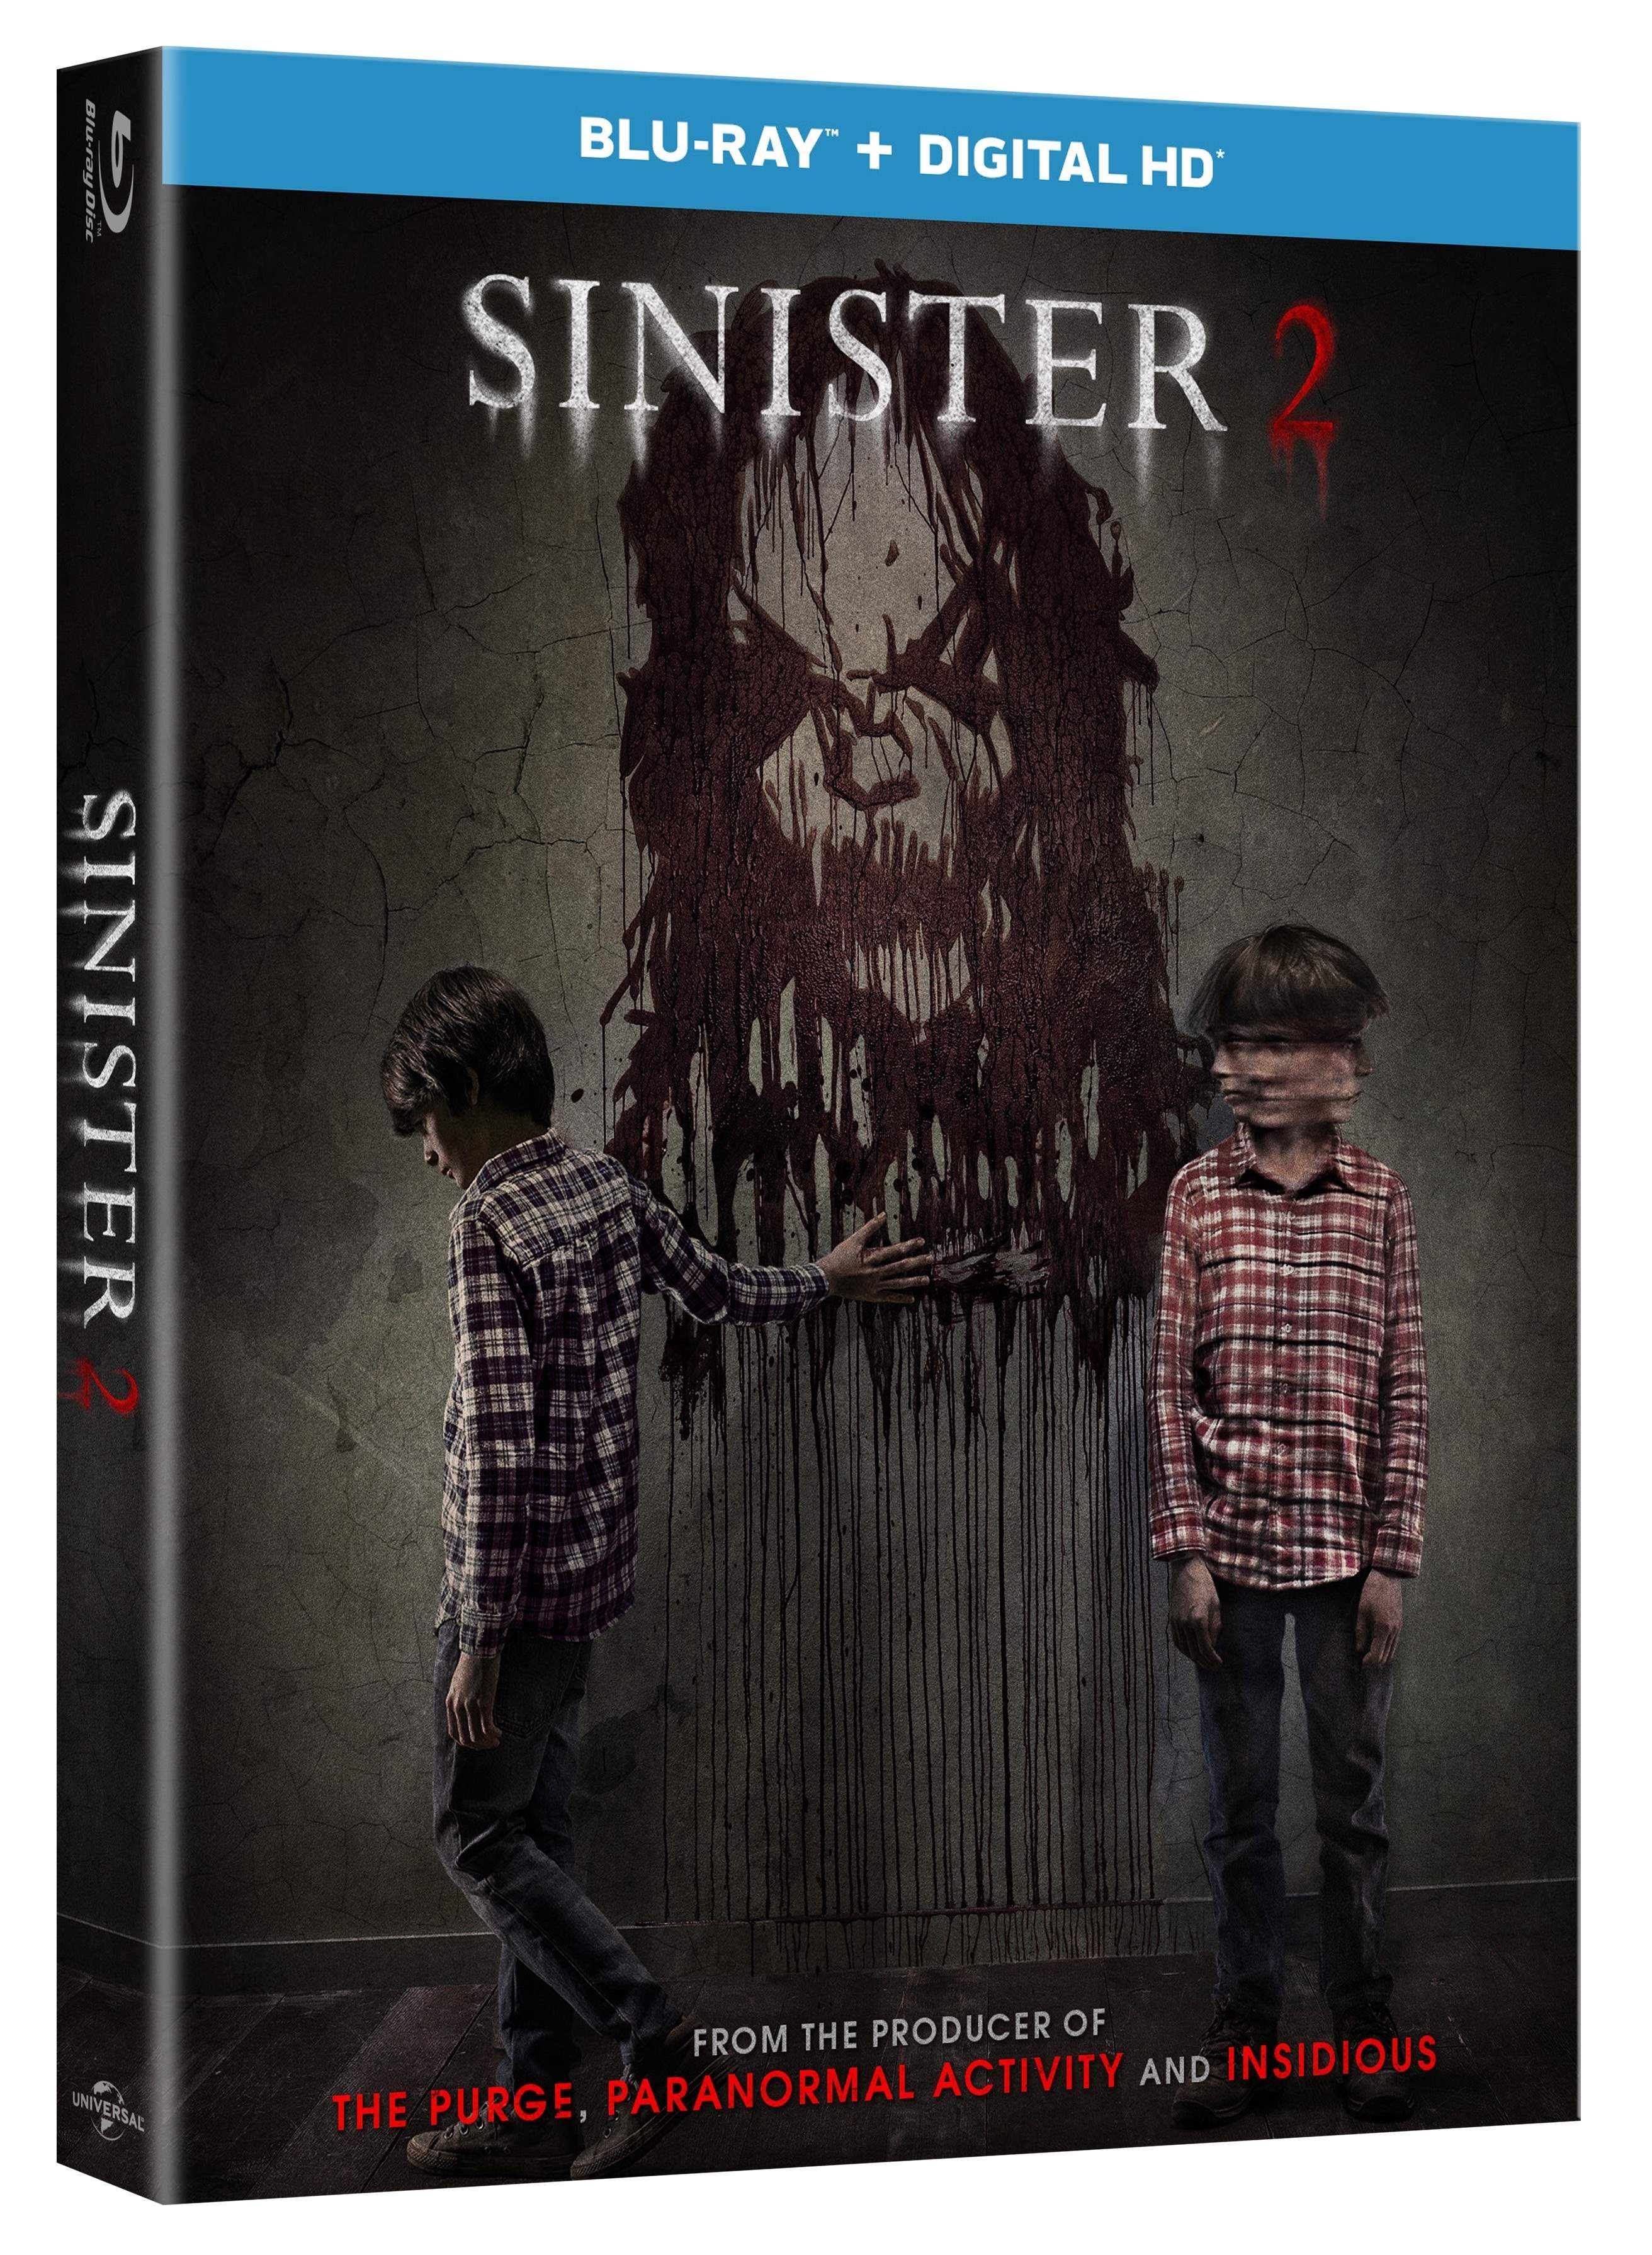 Blu Ray copy of Sinister 2 for giveaway